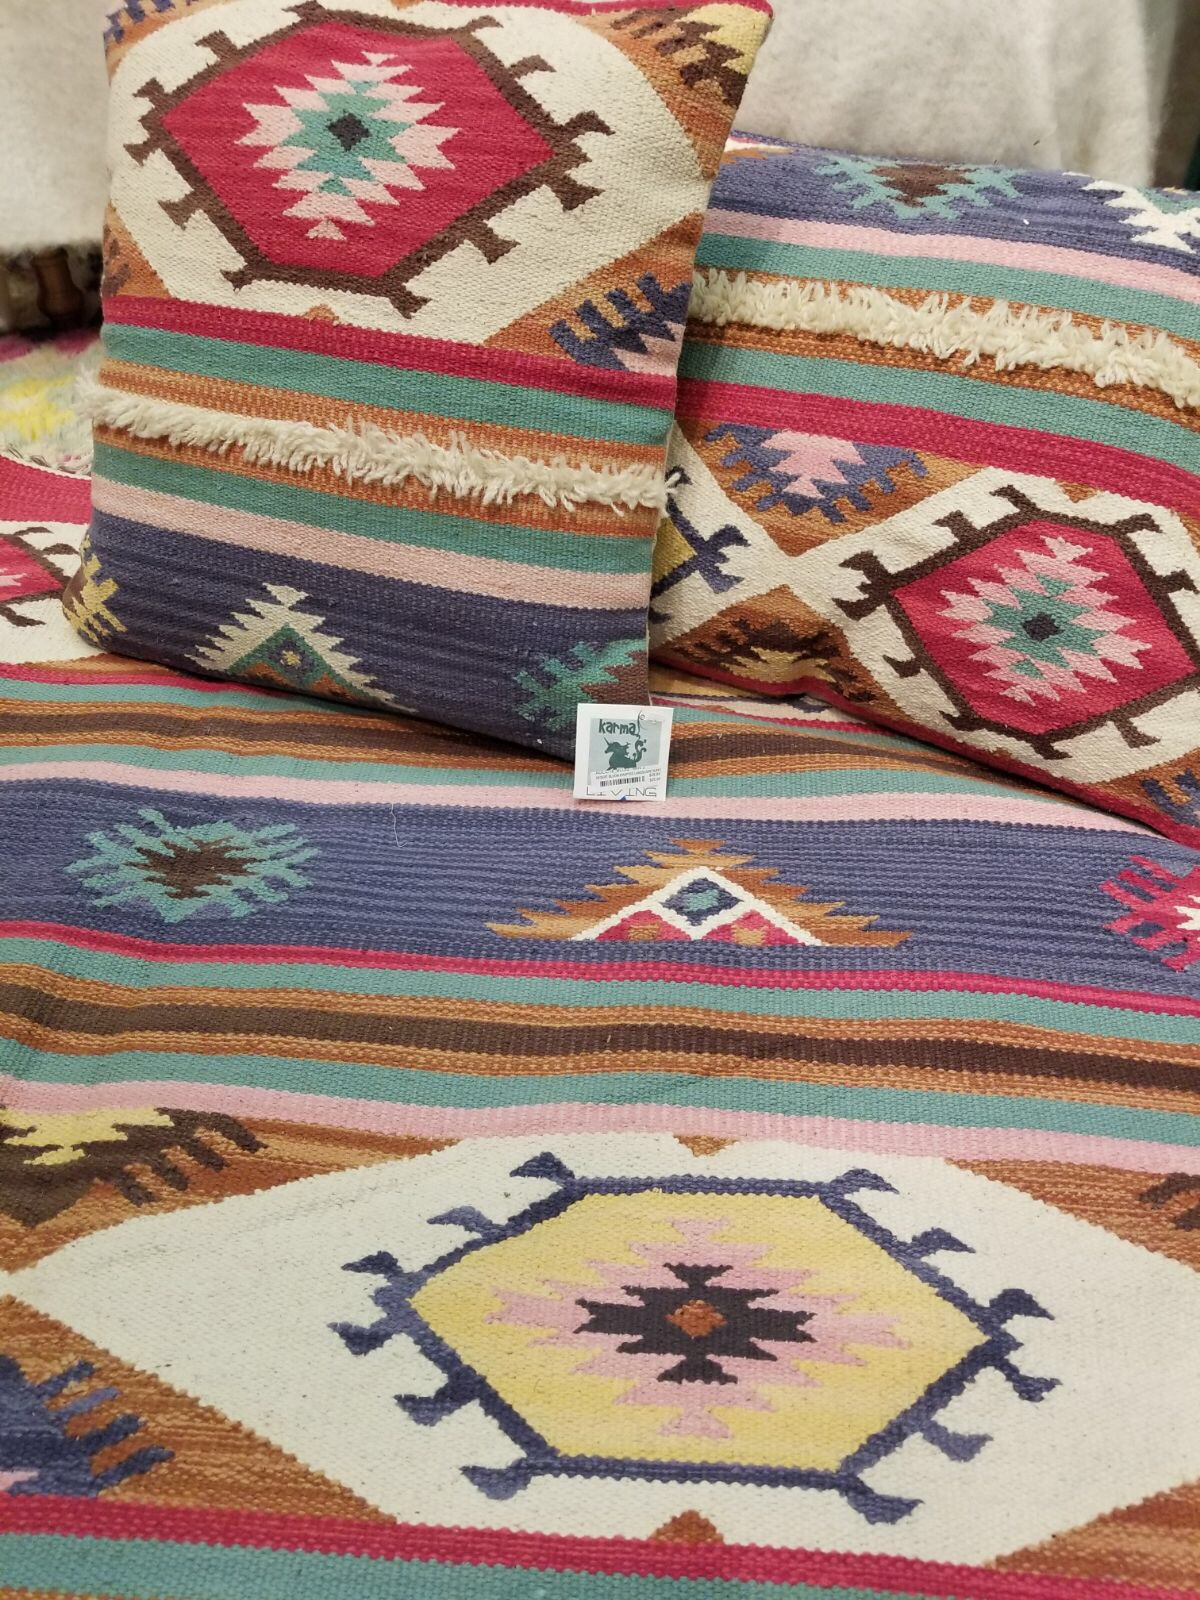 Karma Living Unique Accent Rugs At Americasmart Rug News